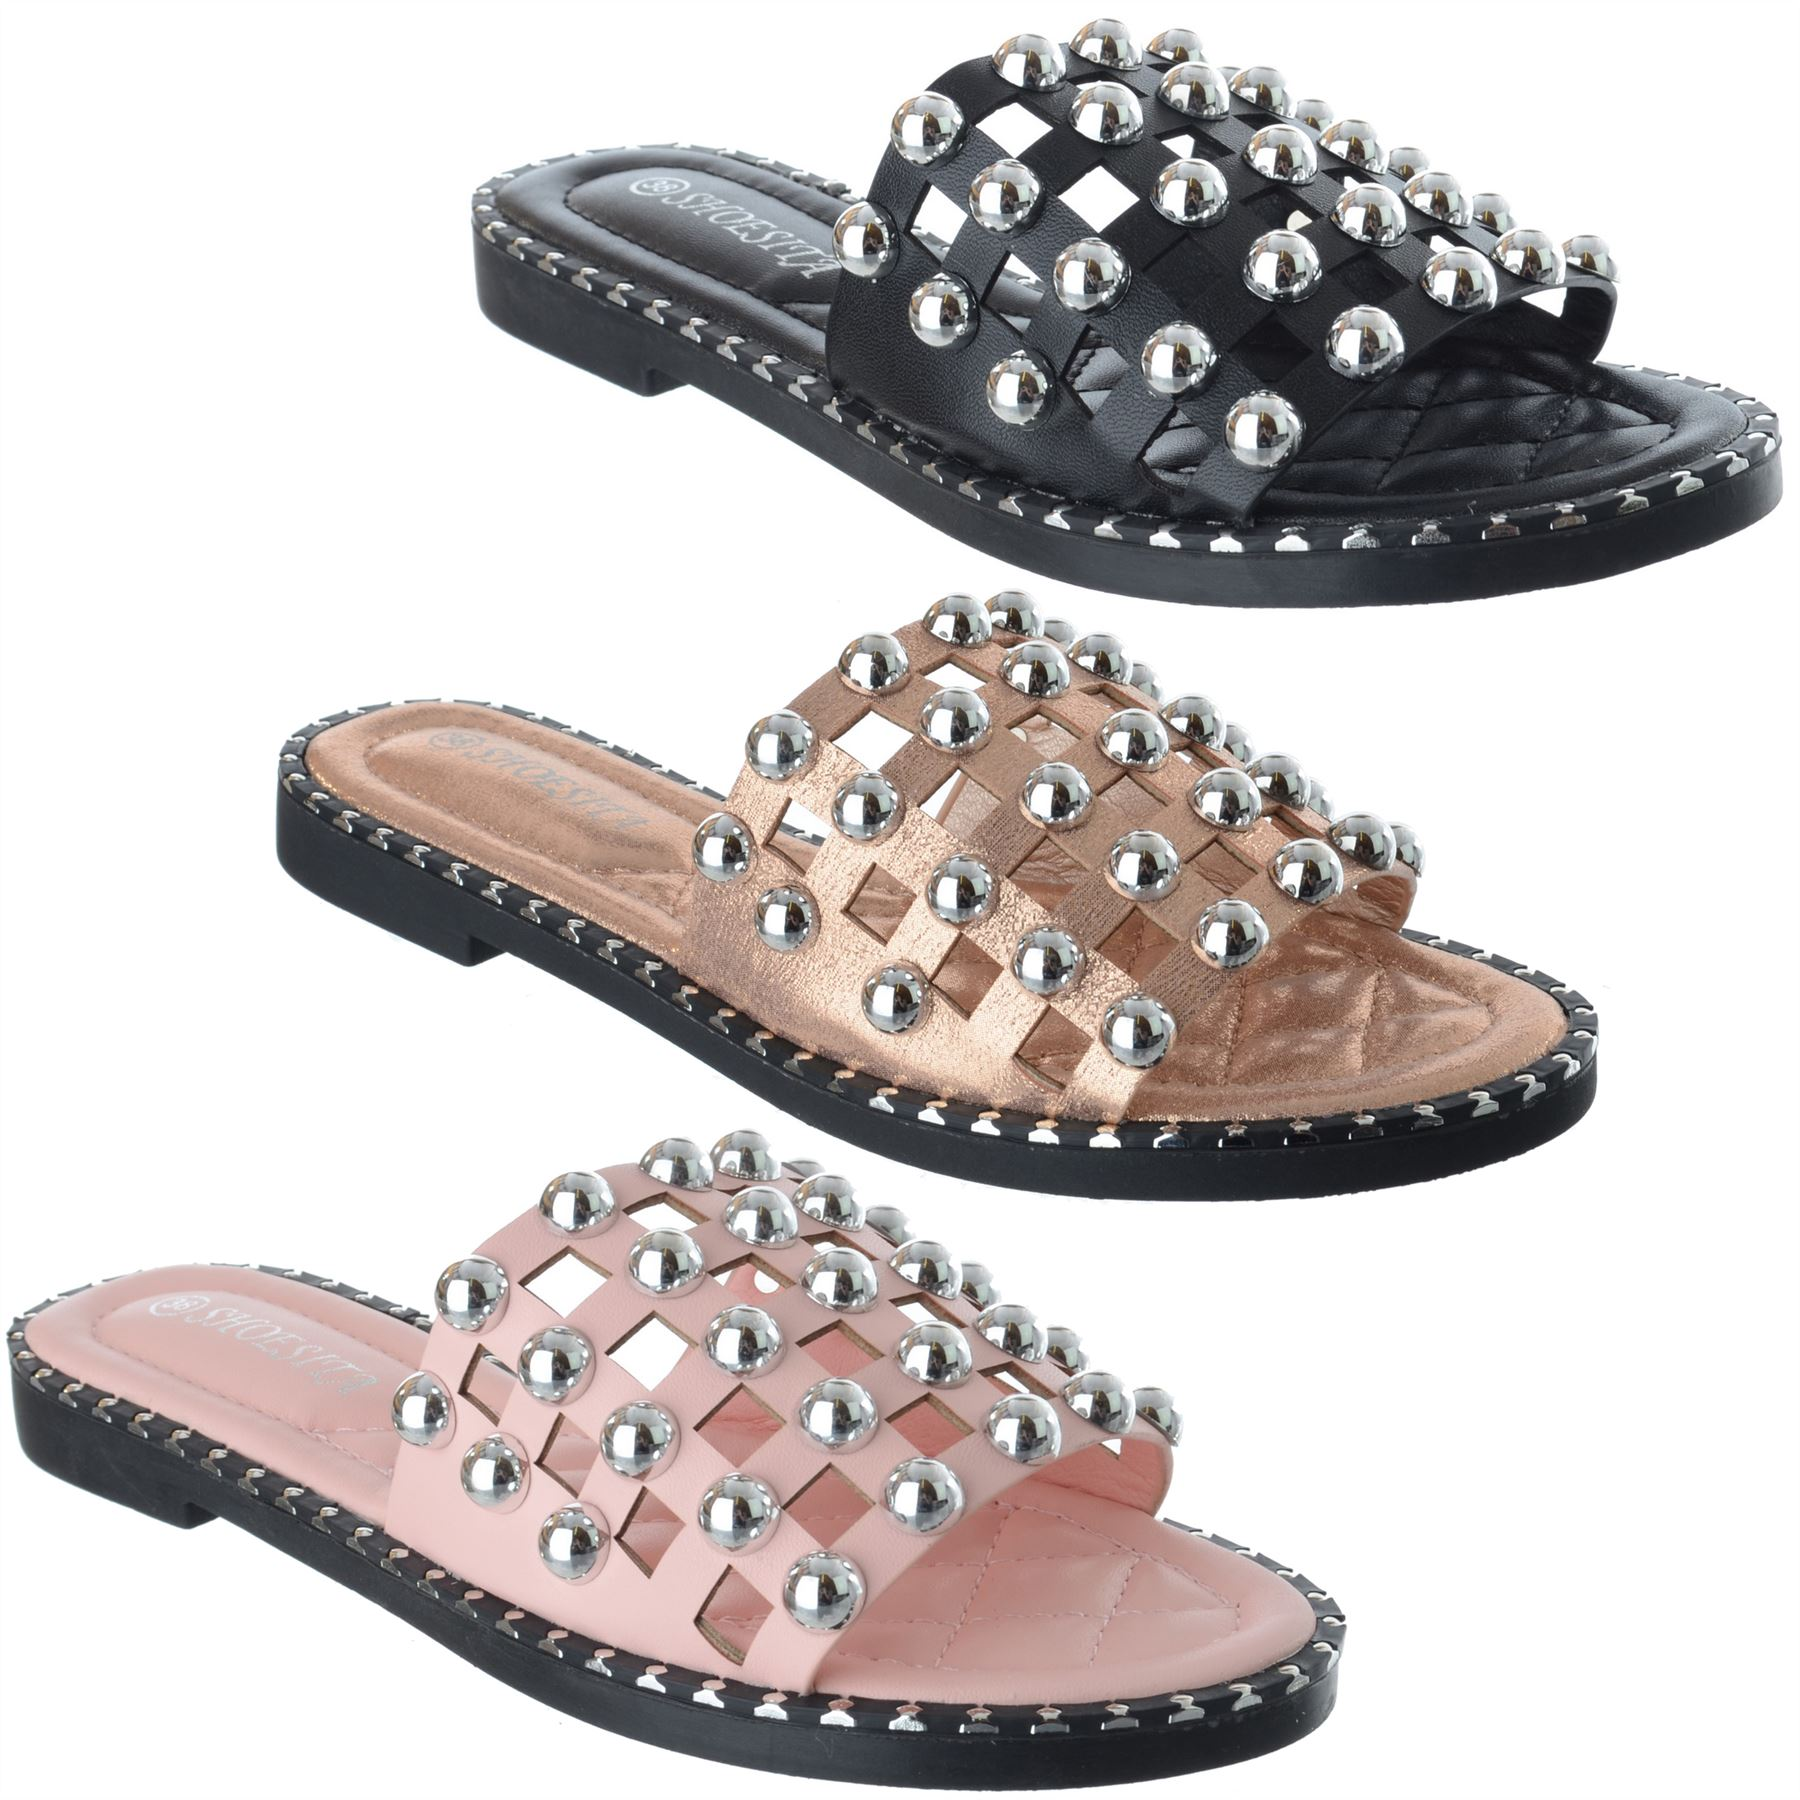 425ab6068b2 Details about Womens Ladies Flat Heel Studded Caged Slip On Summer Sliders  Sandals Shoes Size